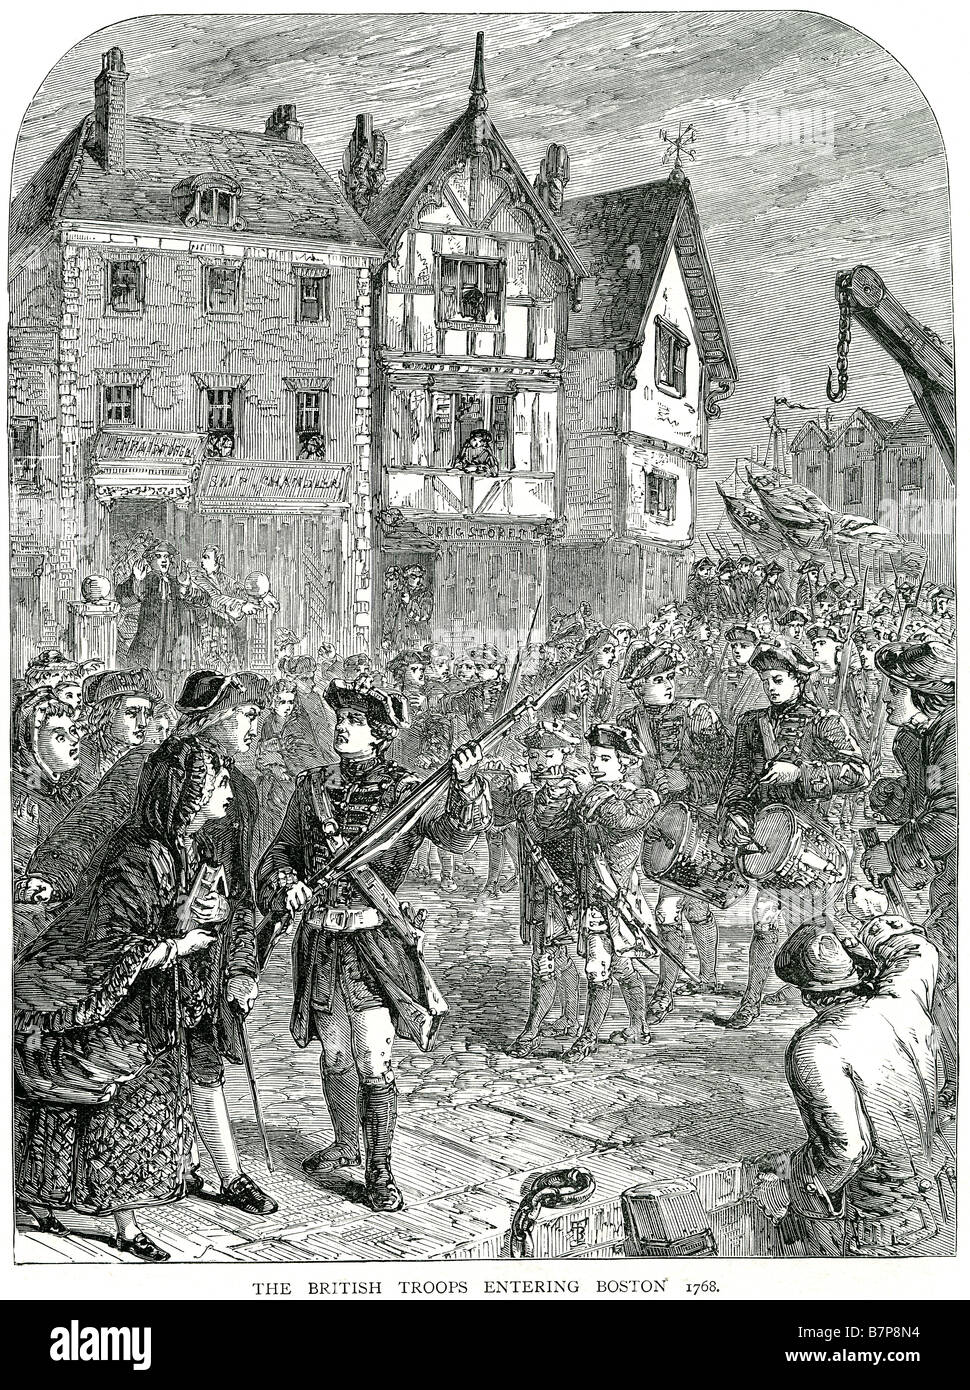 British Troops Entering Boston 1768 parade city angry military traditional clothing soldiers Learning that British - Stock Image